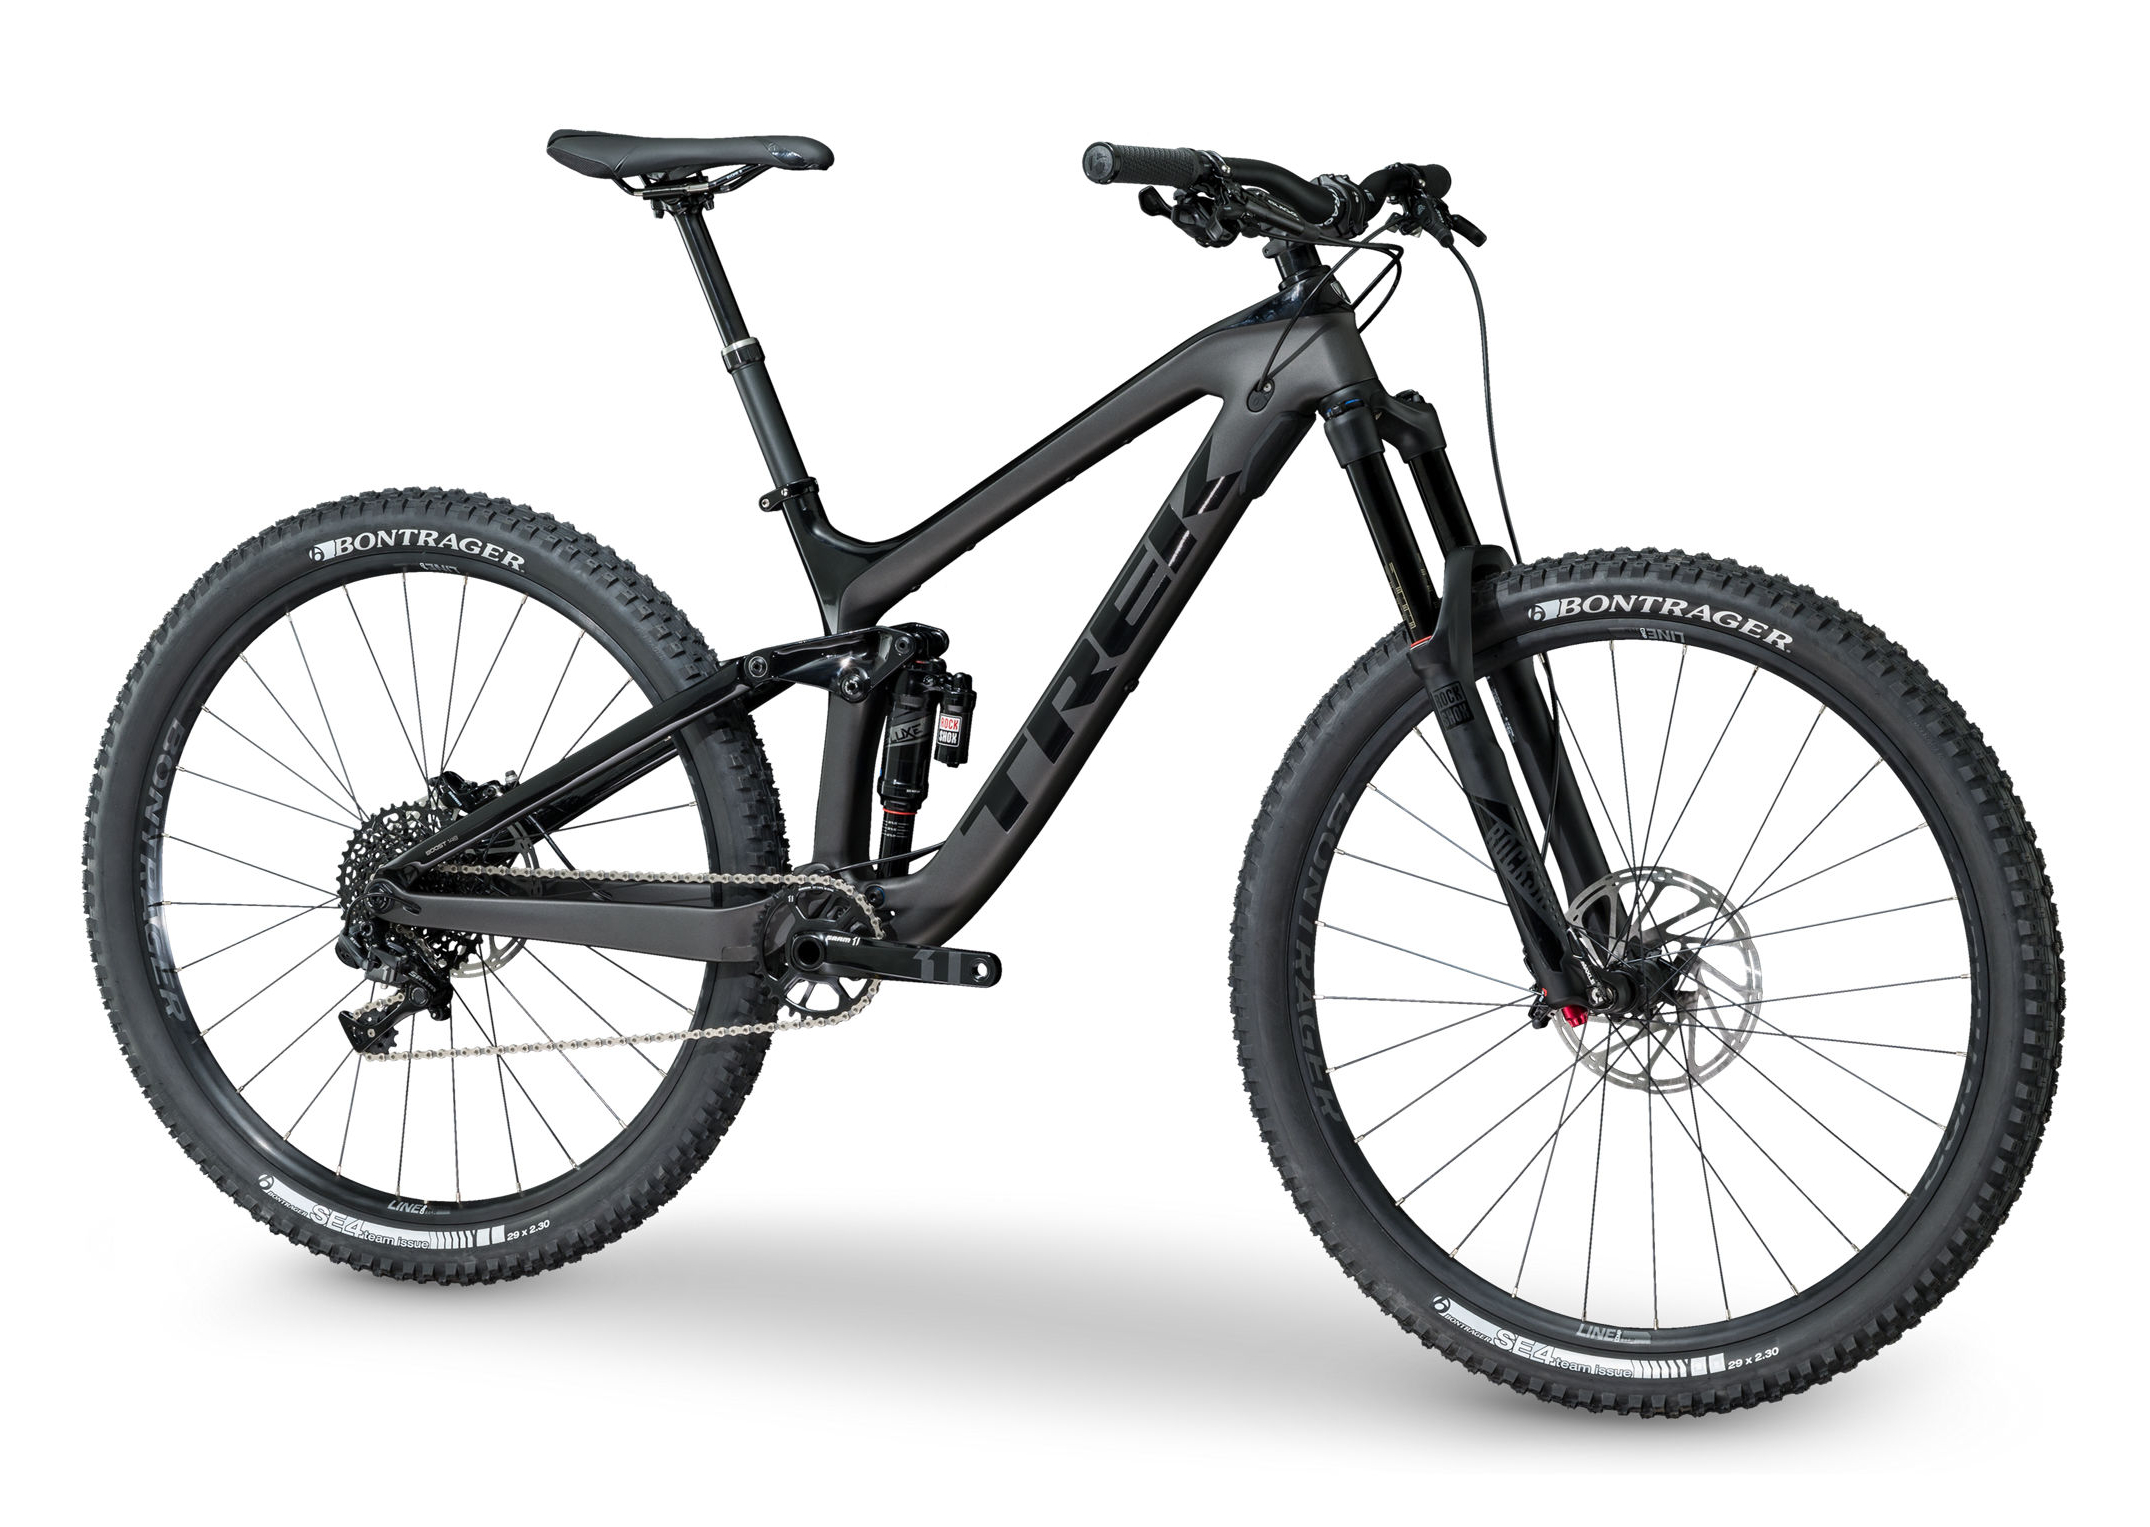 759ff87f06d Trek Slash 9.8 29er Mountain Bike 2017 Matte Black/Black £3,999.00